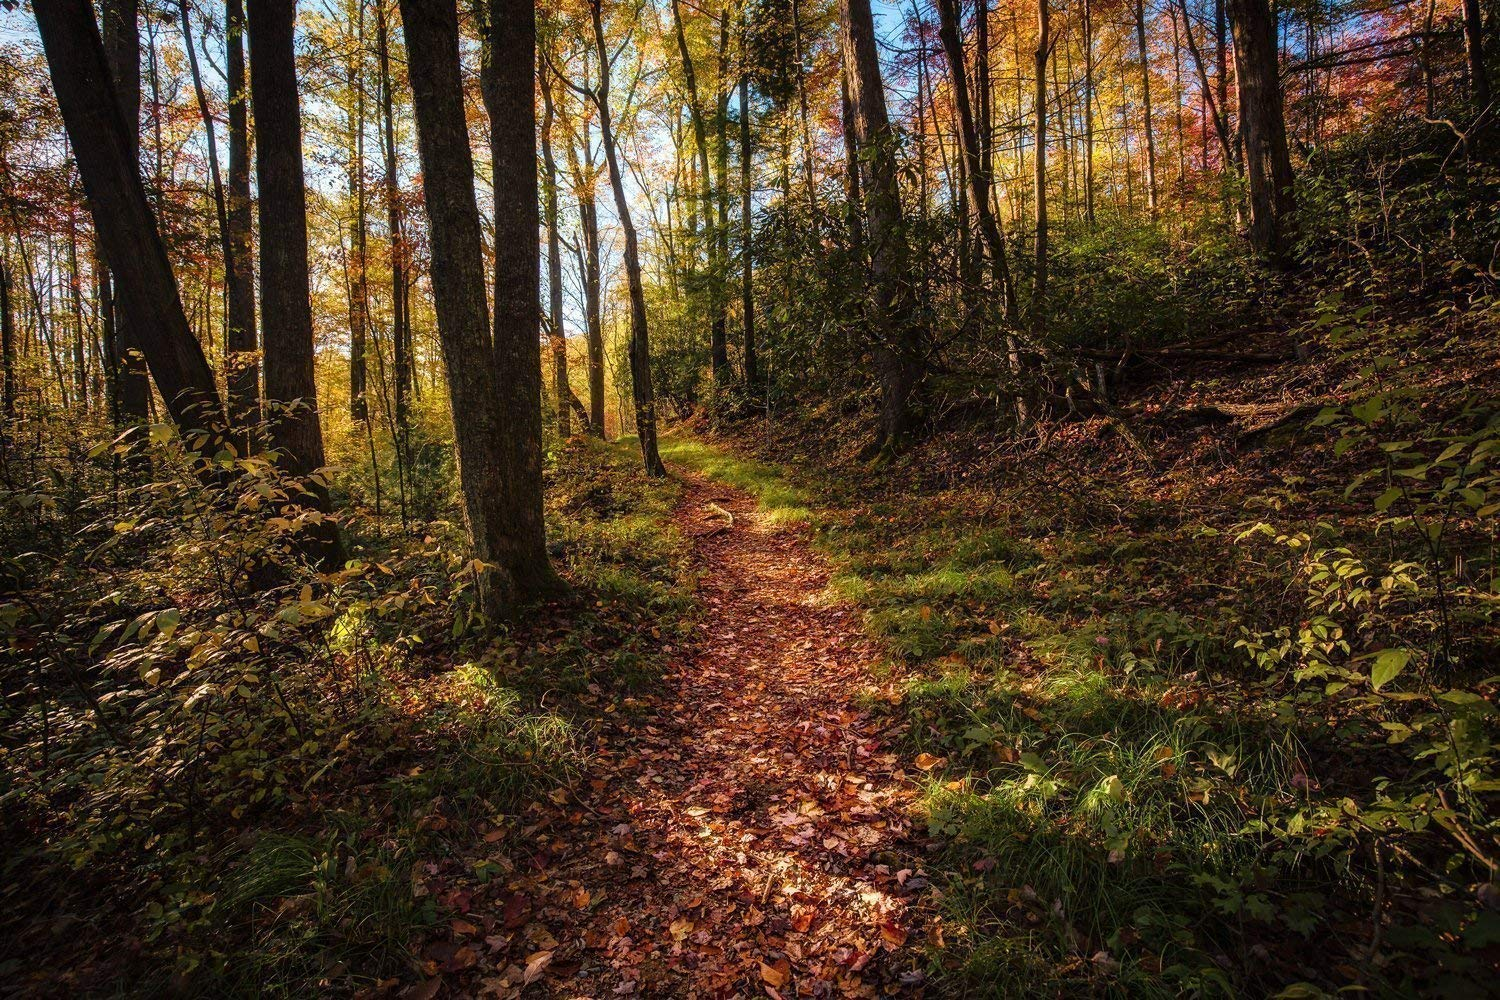 Forest Photography Art Print - Picture of Trail During Fall in the Great Smoky Mountains Nature Home Decor 5x7 to 40x60